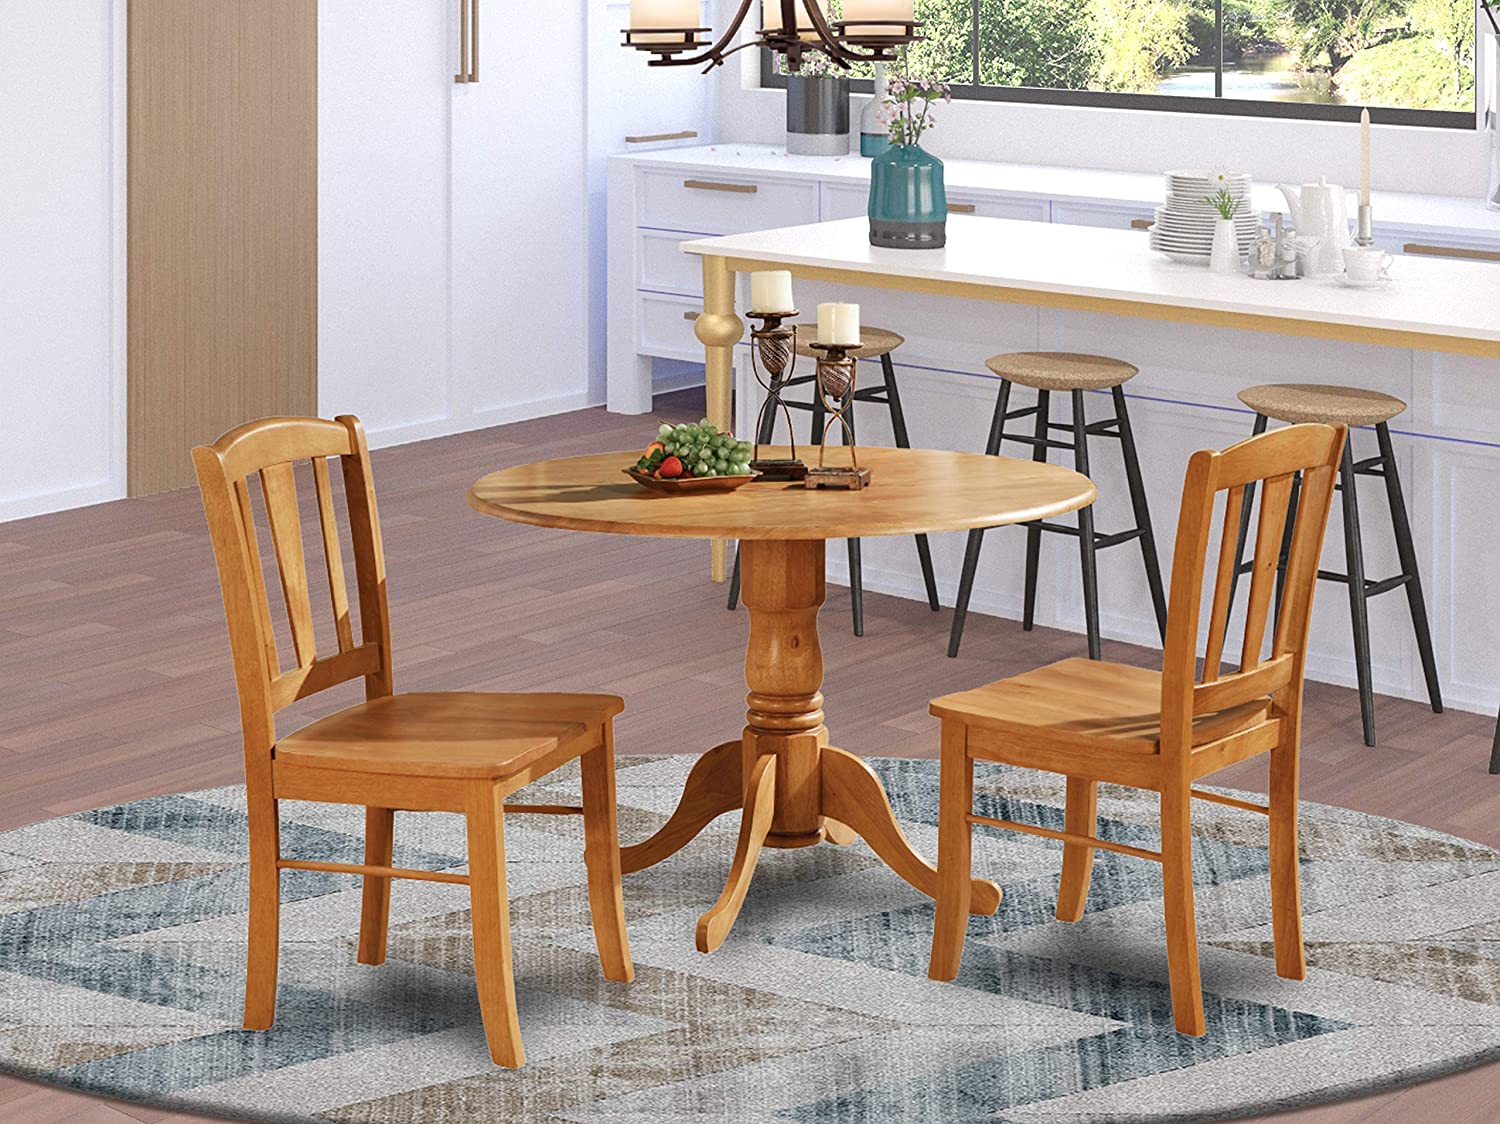 Amazon.com: DLin3-OAK-W 3 Pc Kitchen Table Set-Kitchen Dining Nook And 2 Dinette Chairs Chairs: Furniture & Decor